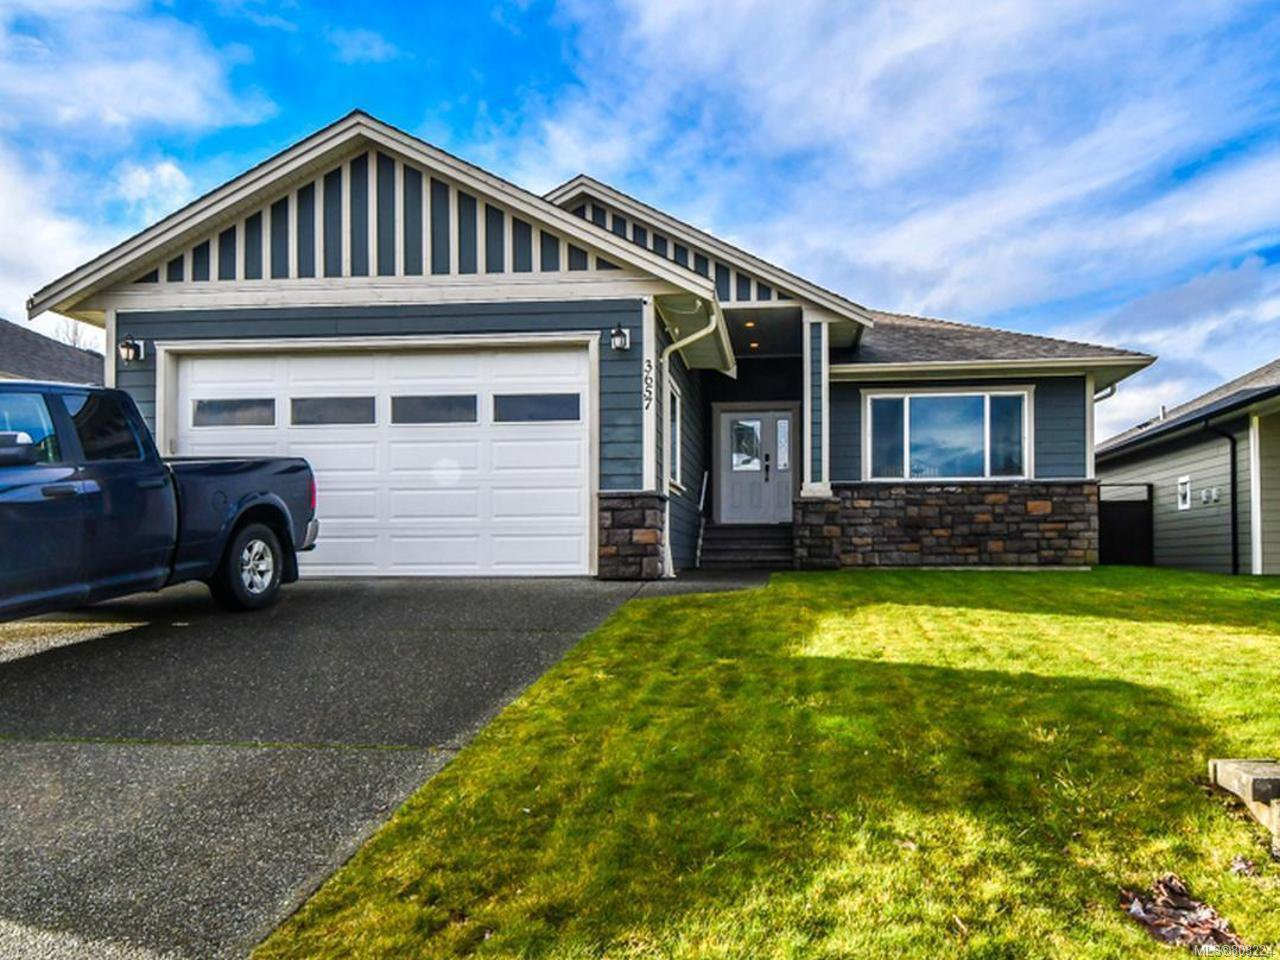 Main Photo: 3657 VERMONT PLACE in CAMPBELL RIVER: CR Willow Point House for sale (Campbell River)  : MLS®# 803224